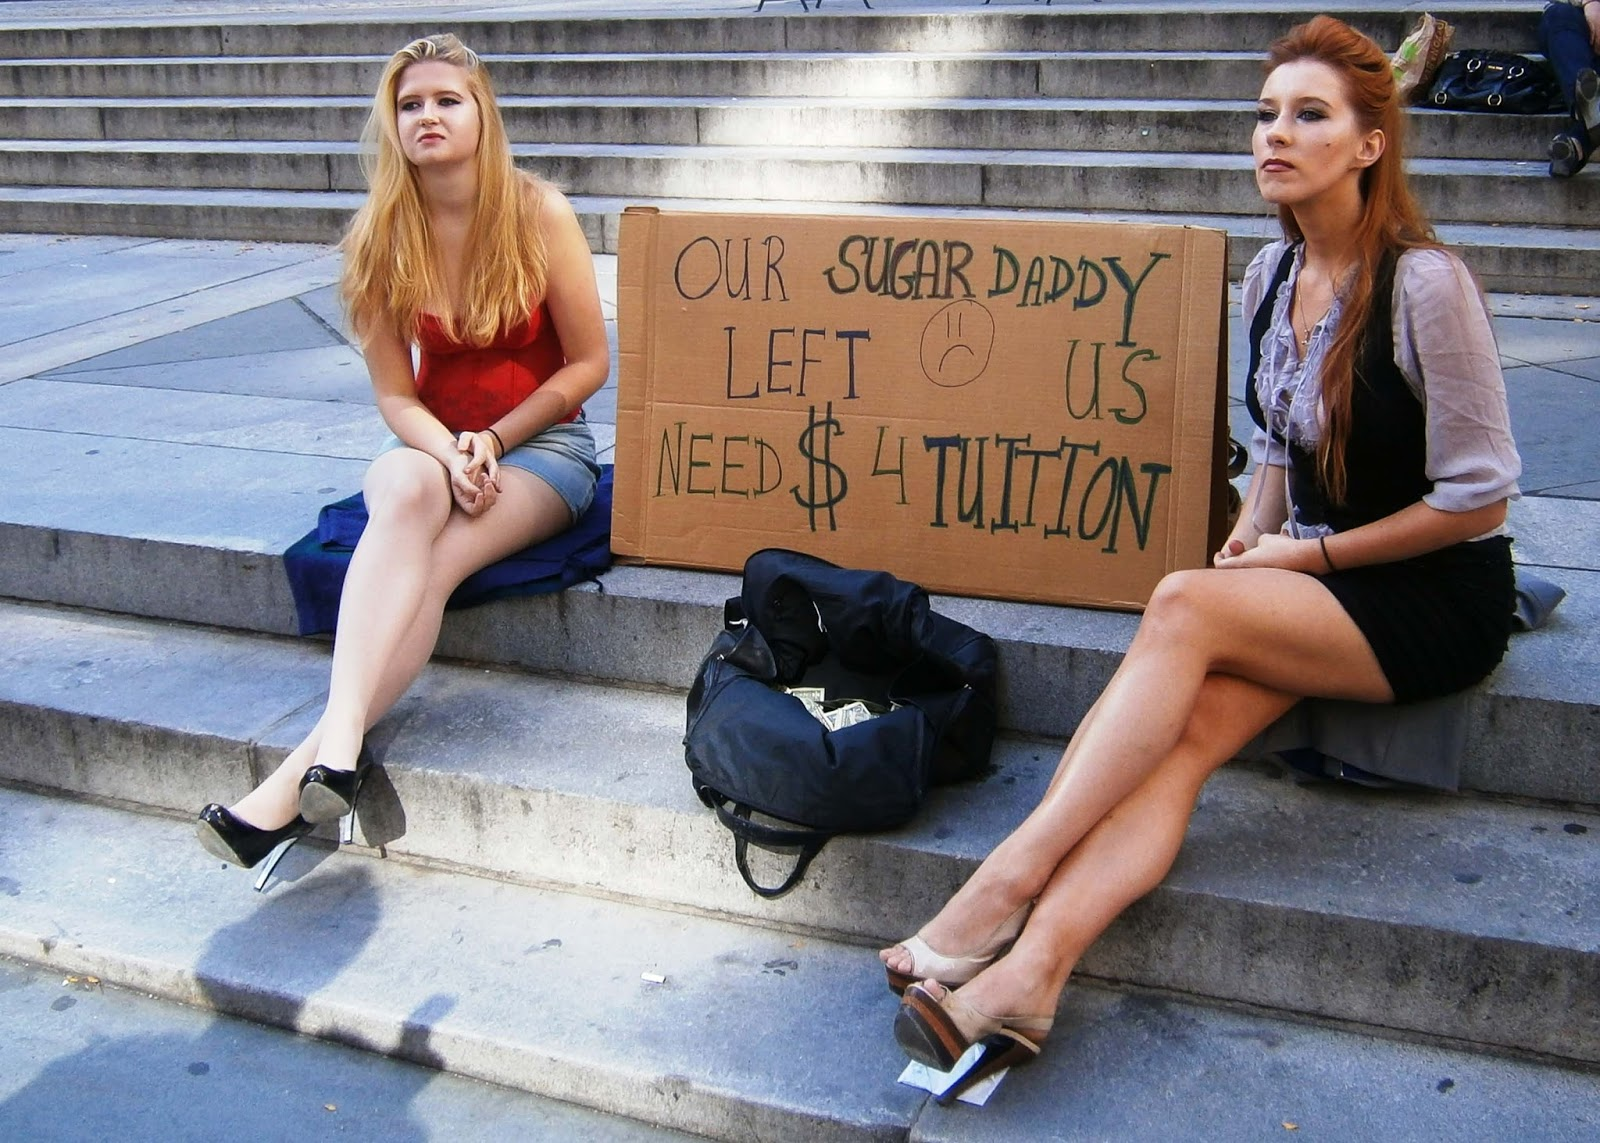 Pictures of stupid colege girls #4